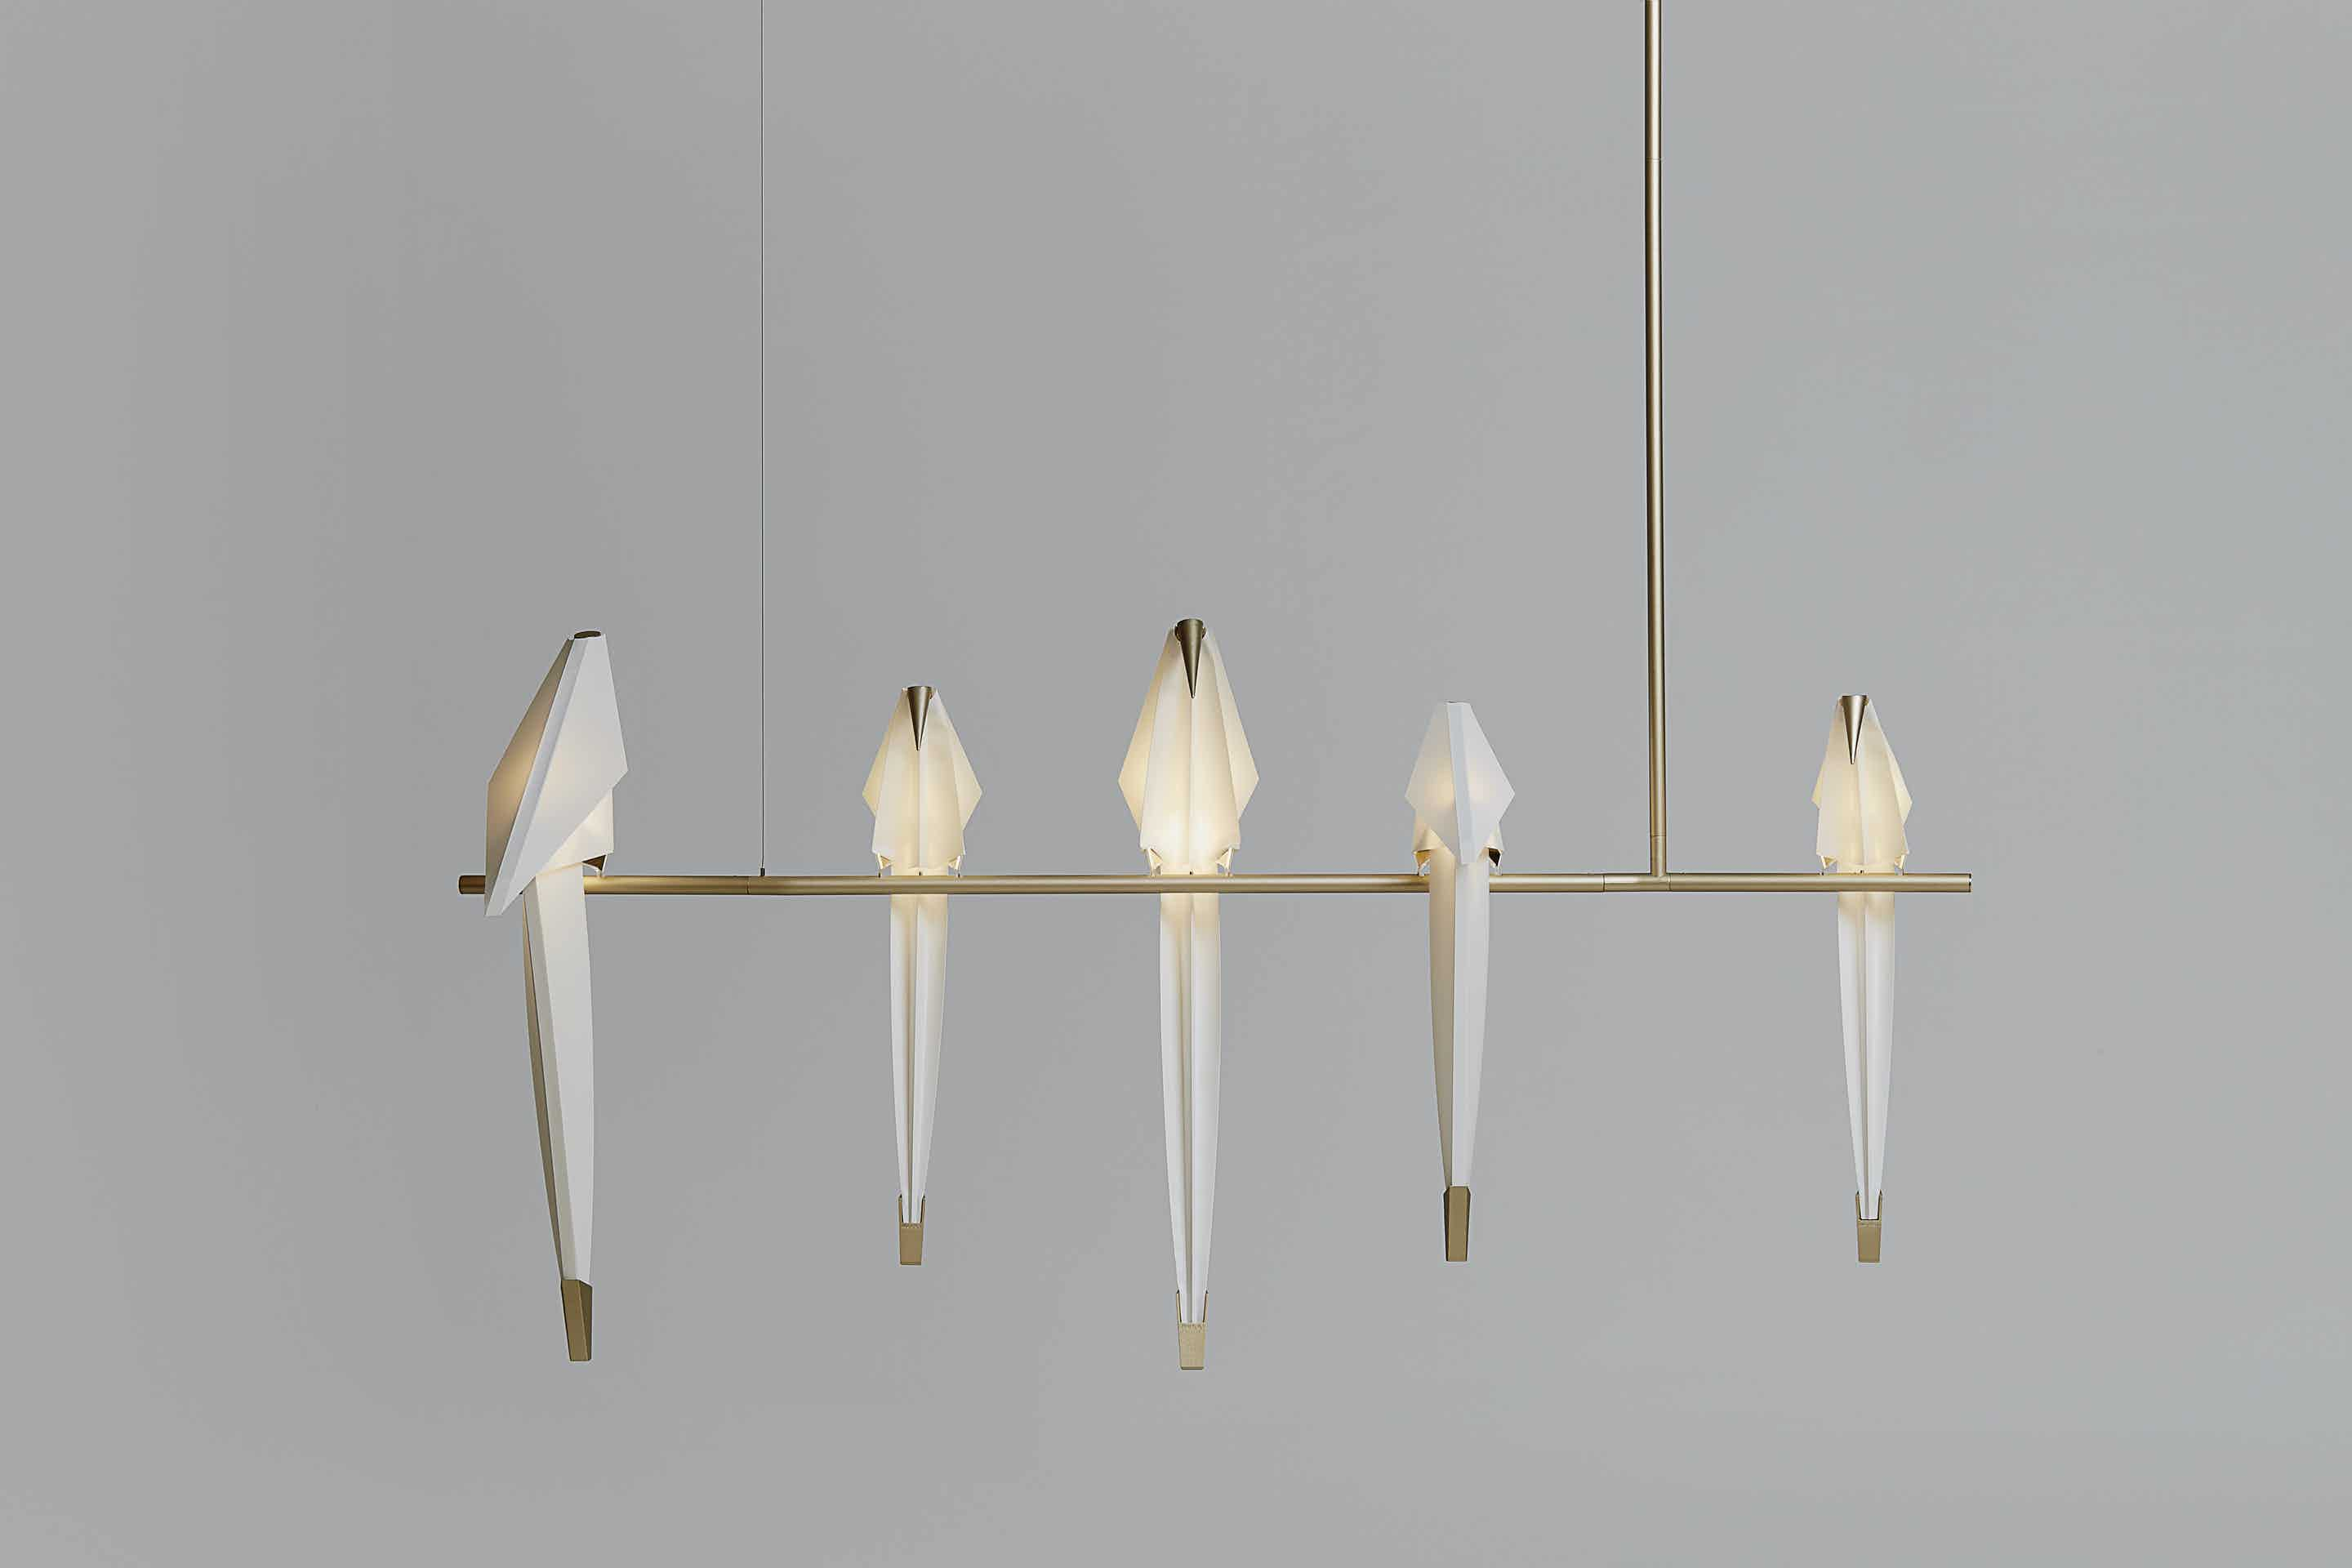 Moooi-perch-light-branch-front-line-haute-living